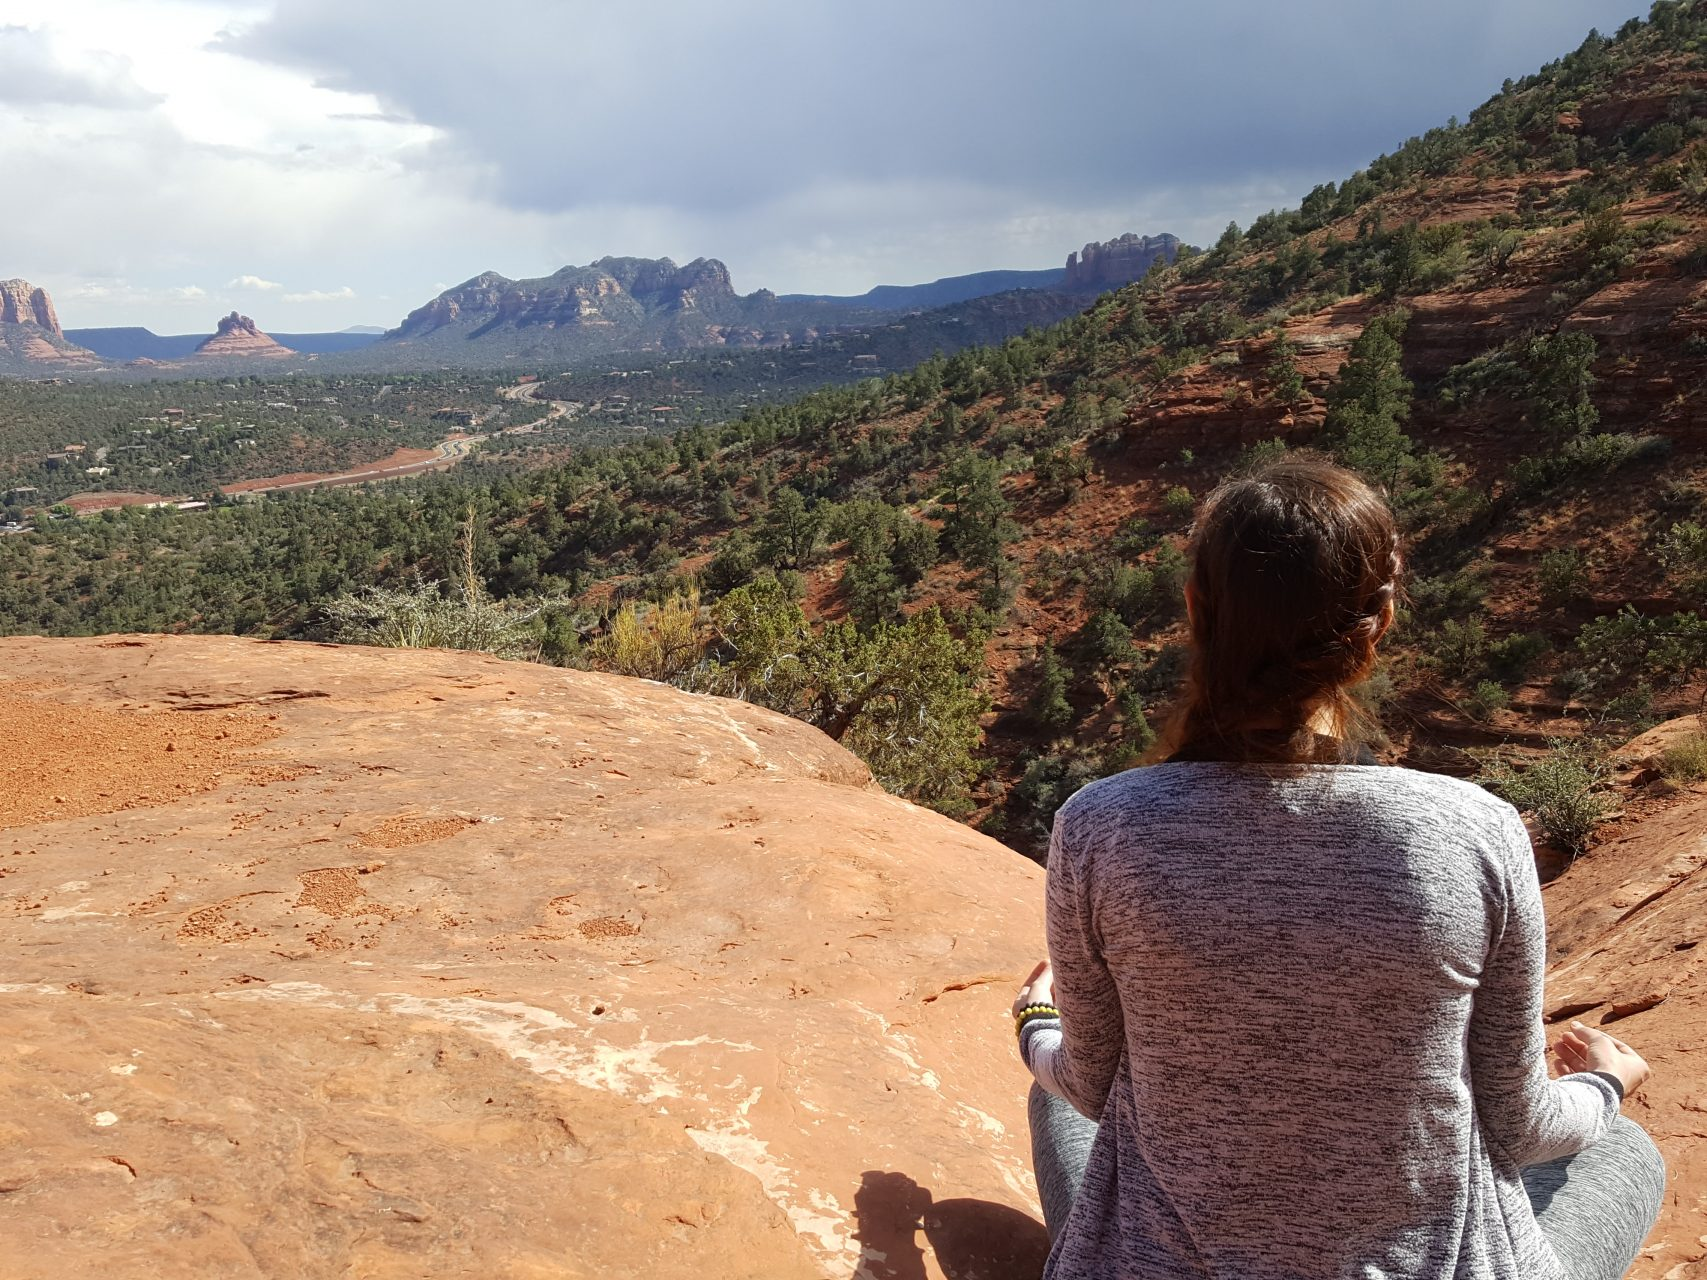 Feel the vortex of Sedona